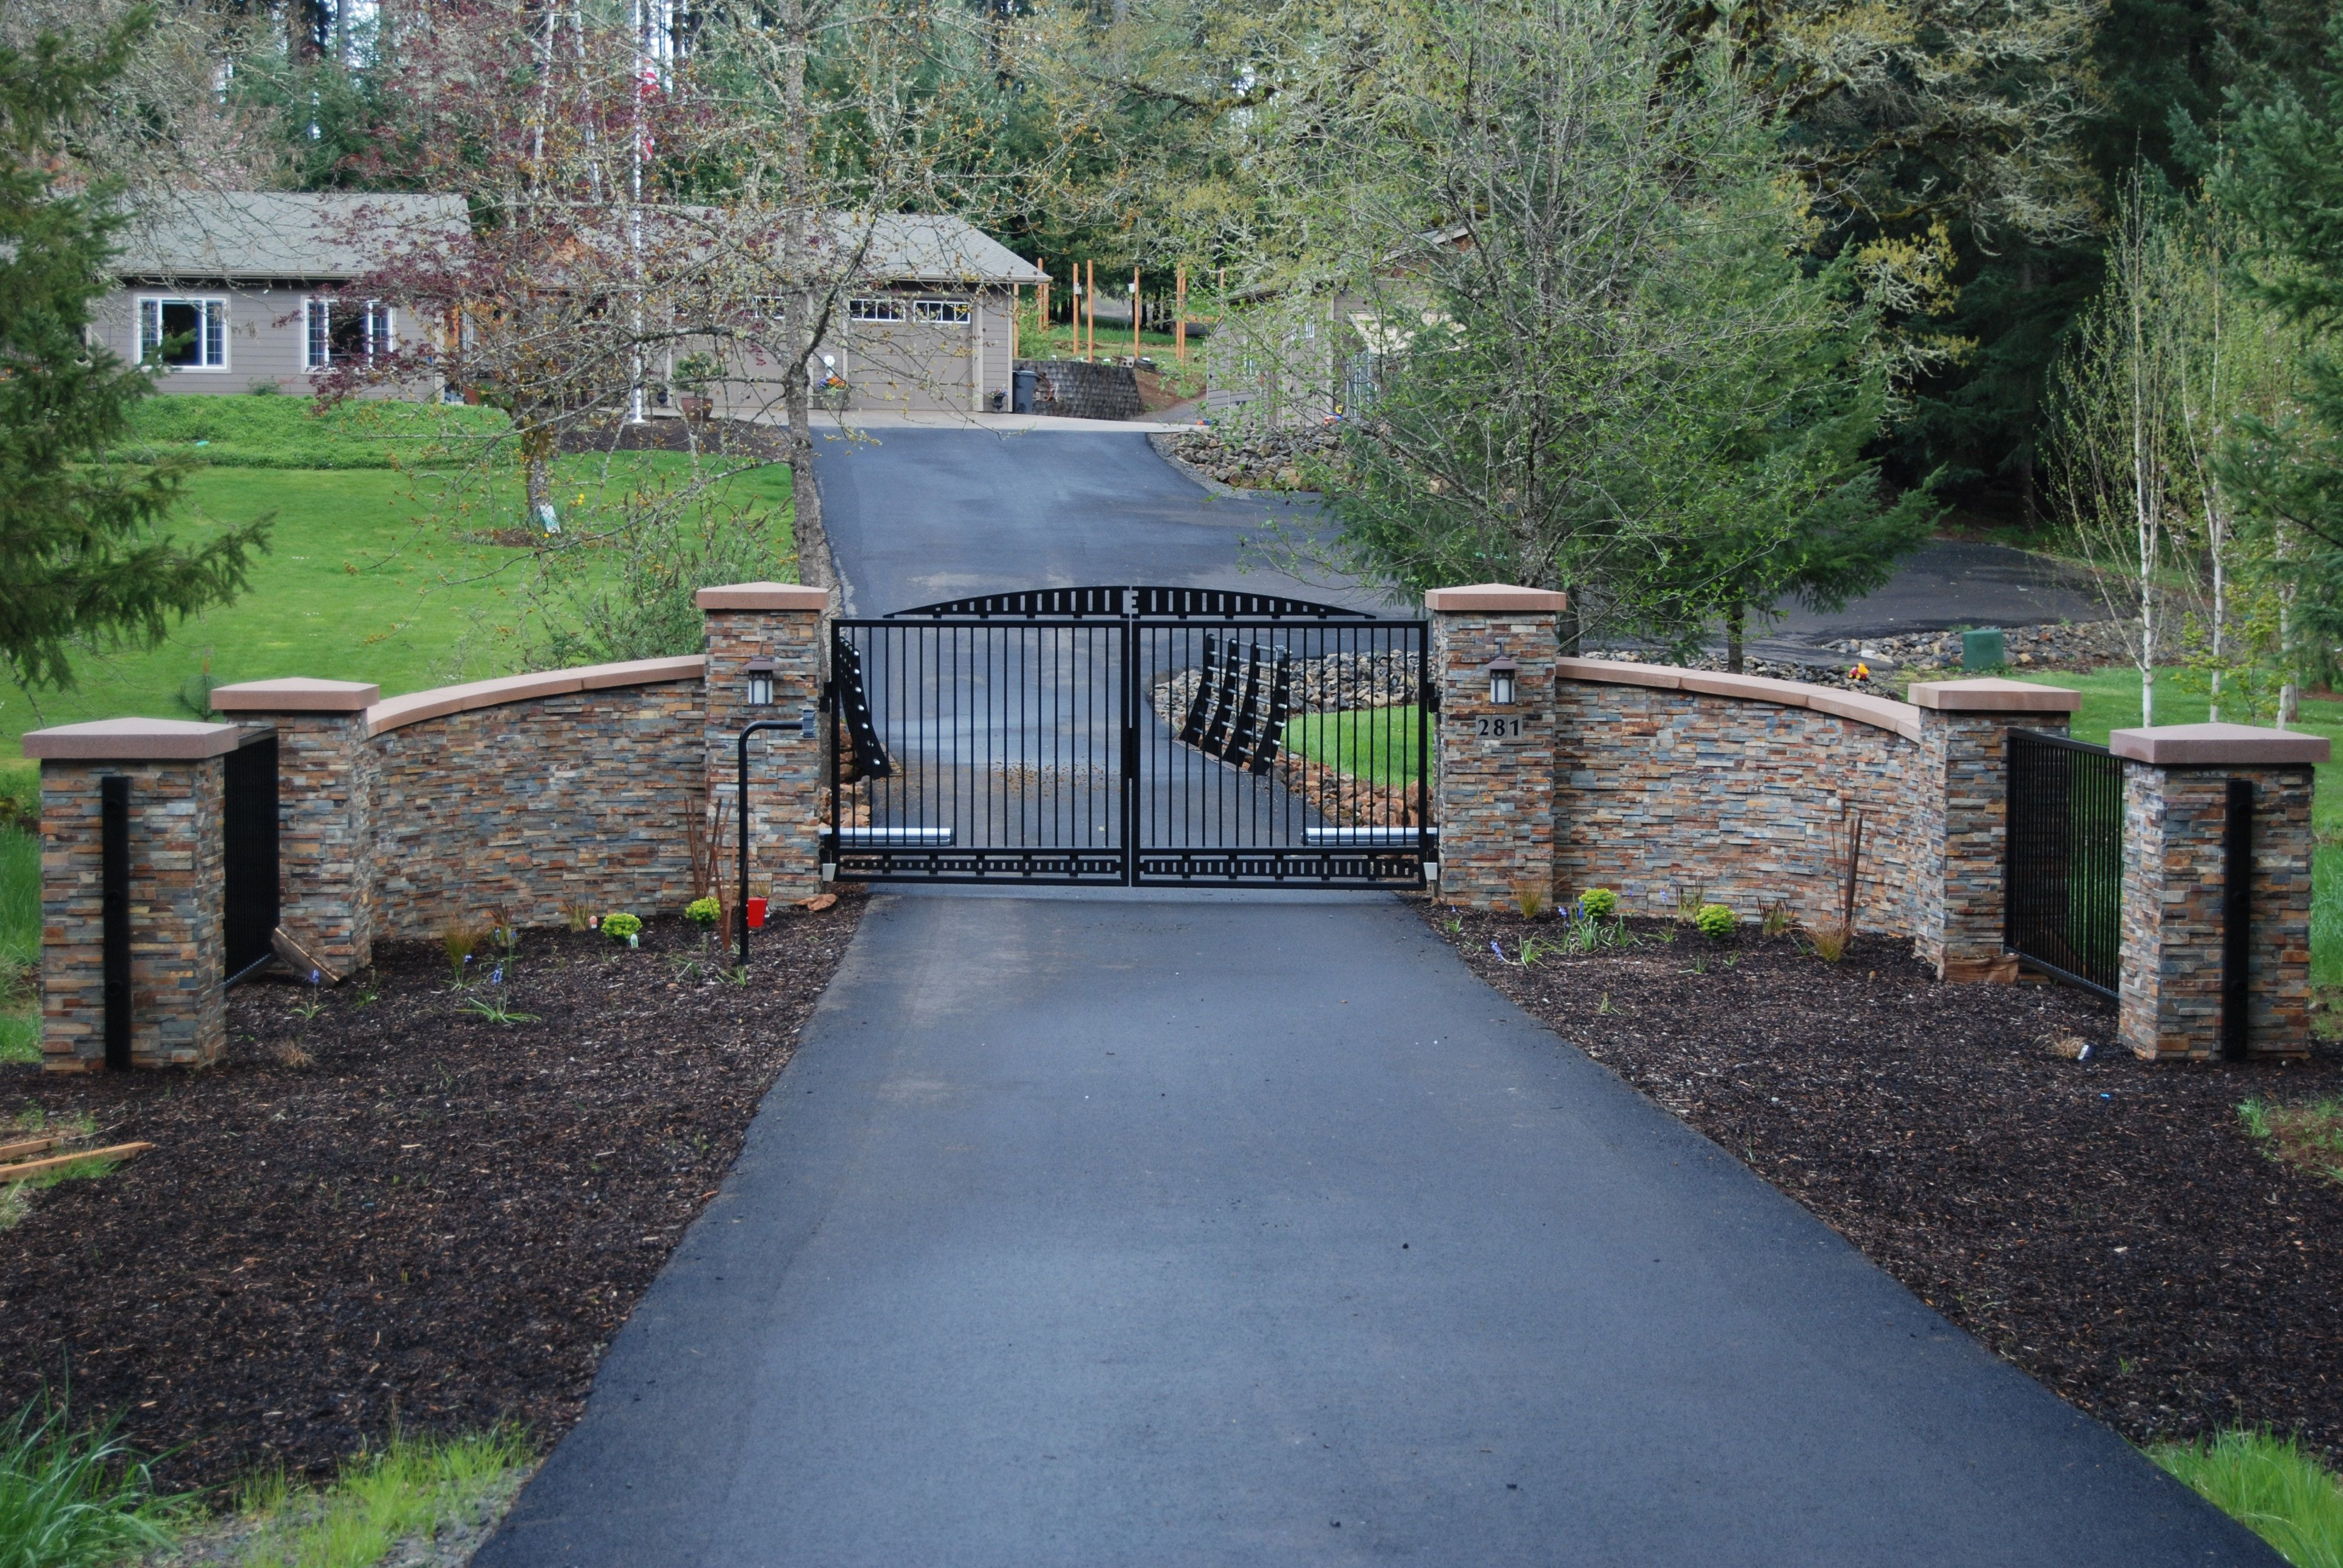 About stone driveway driveway entrance and driveways for Front gate entrance ideas